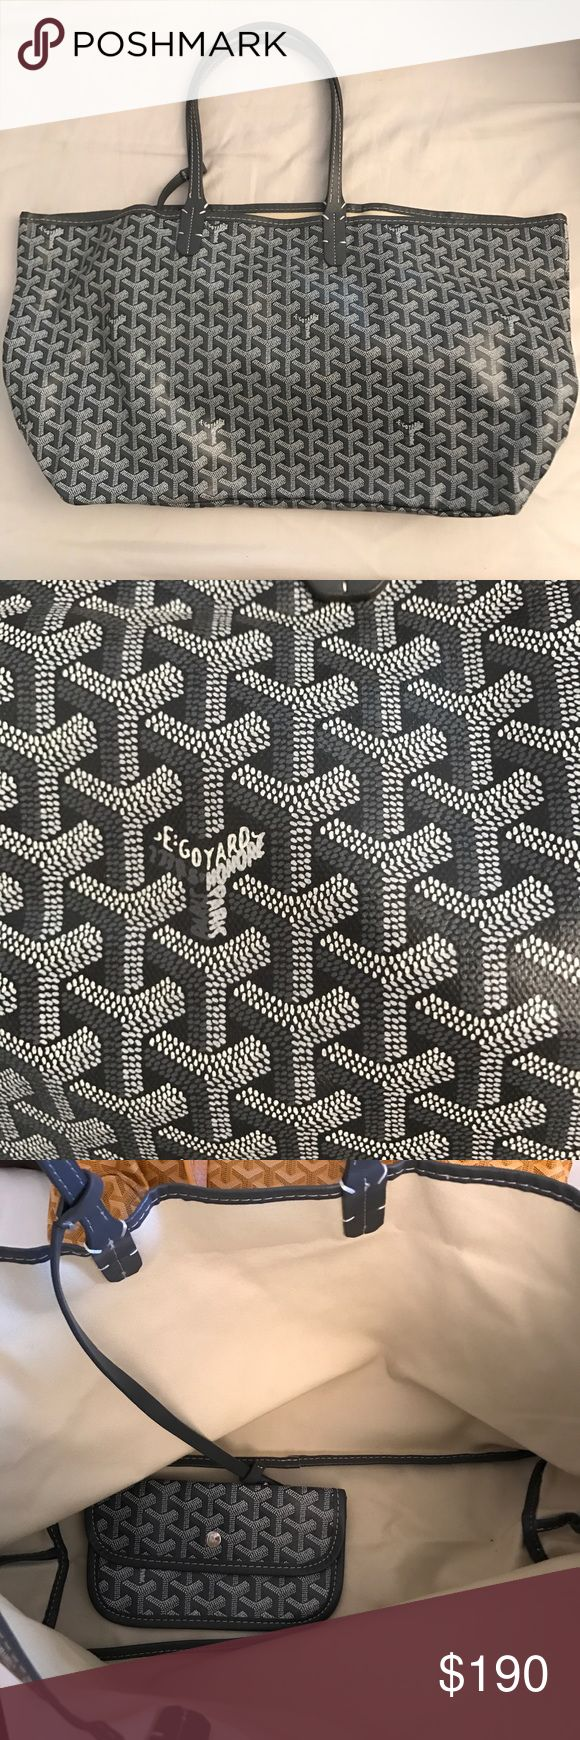 Goyard Tote Gray Goyard tote in perfect condition, only gently used a couple times. NOT AUTHENTIC hence the price. PERFECT replica of the real thing. Goyard Bags